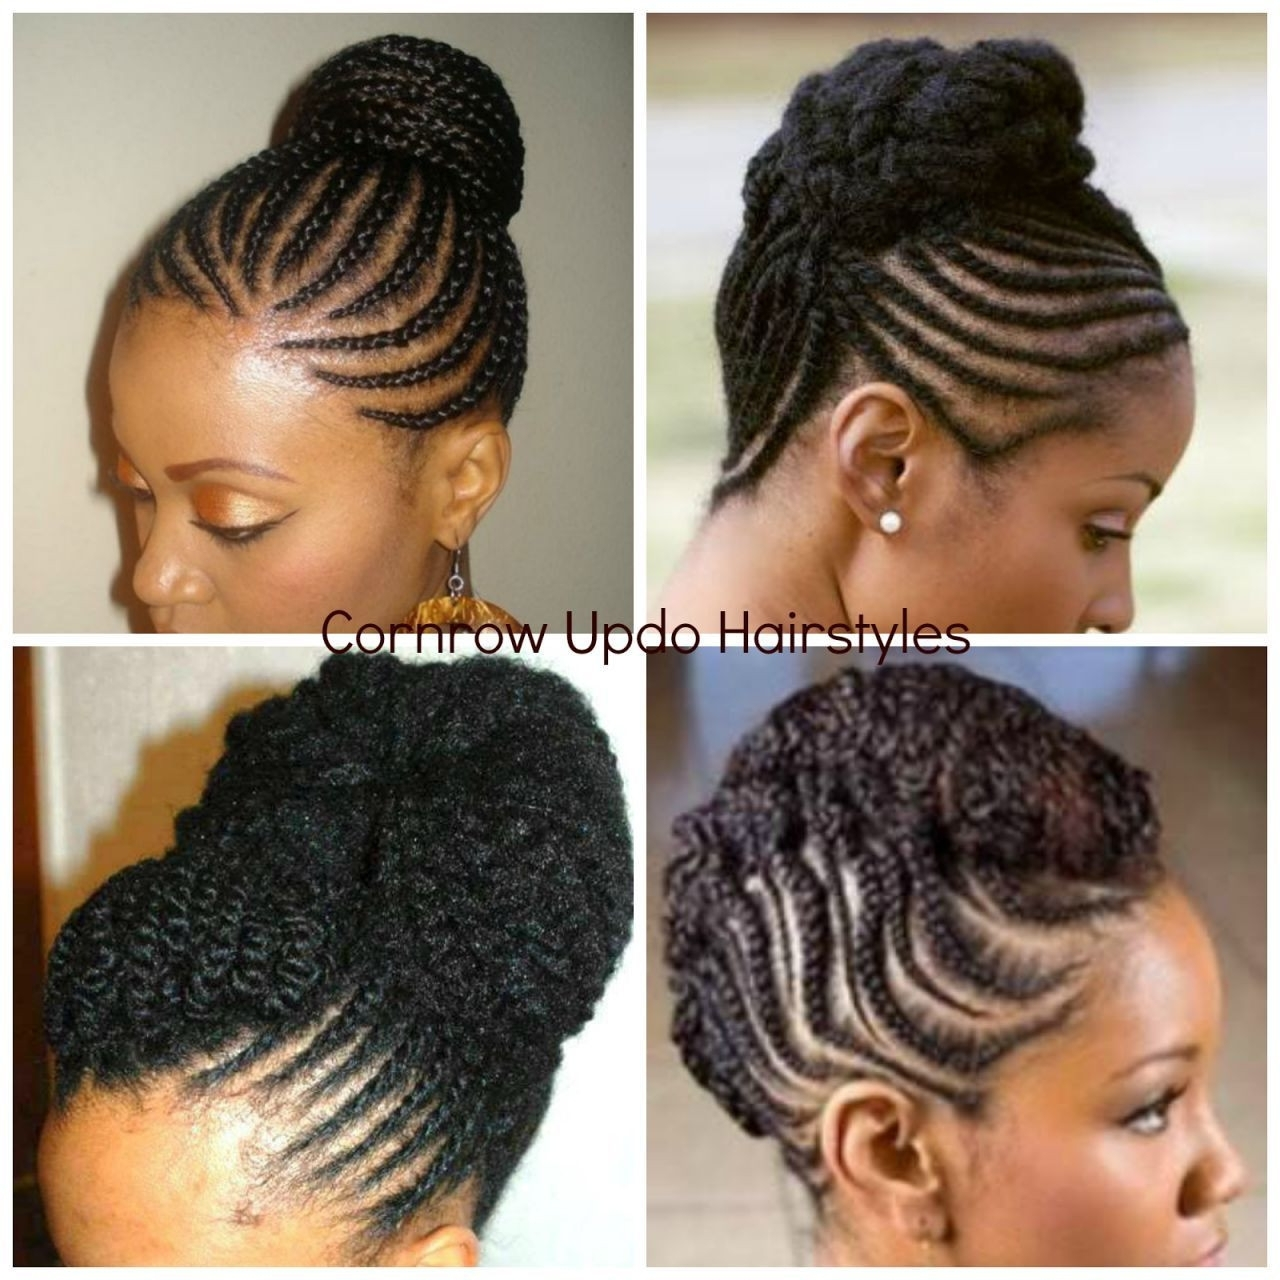 African Afro Hairstyles 2015 Awesome Cornrows 2015 Styles Love Wins Intended For Well Known Cornrows Hairstyles With Afro (View 3 of 15)